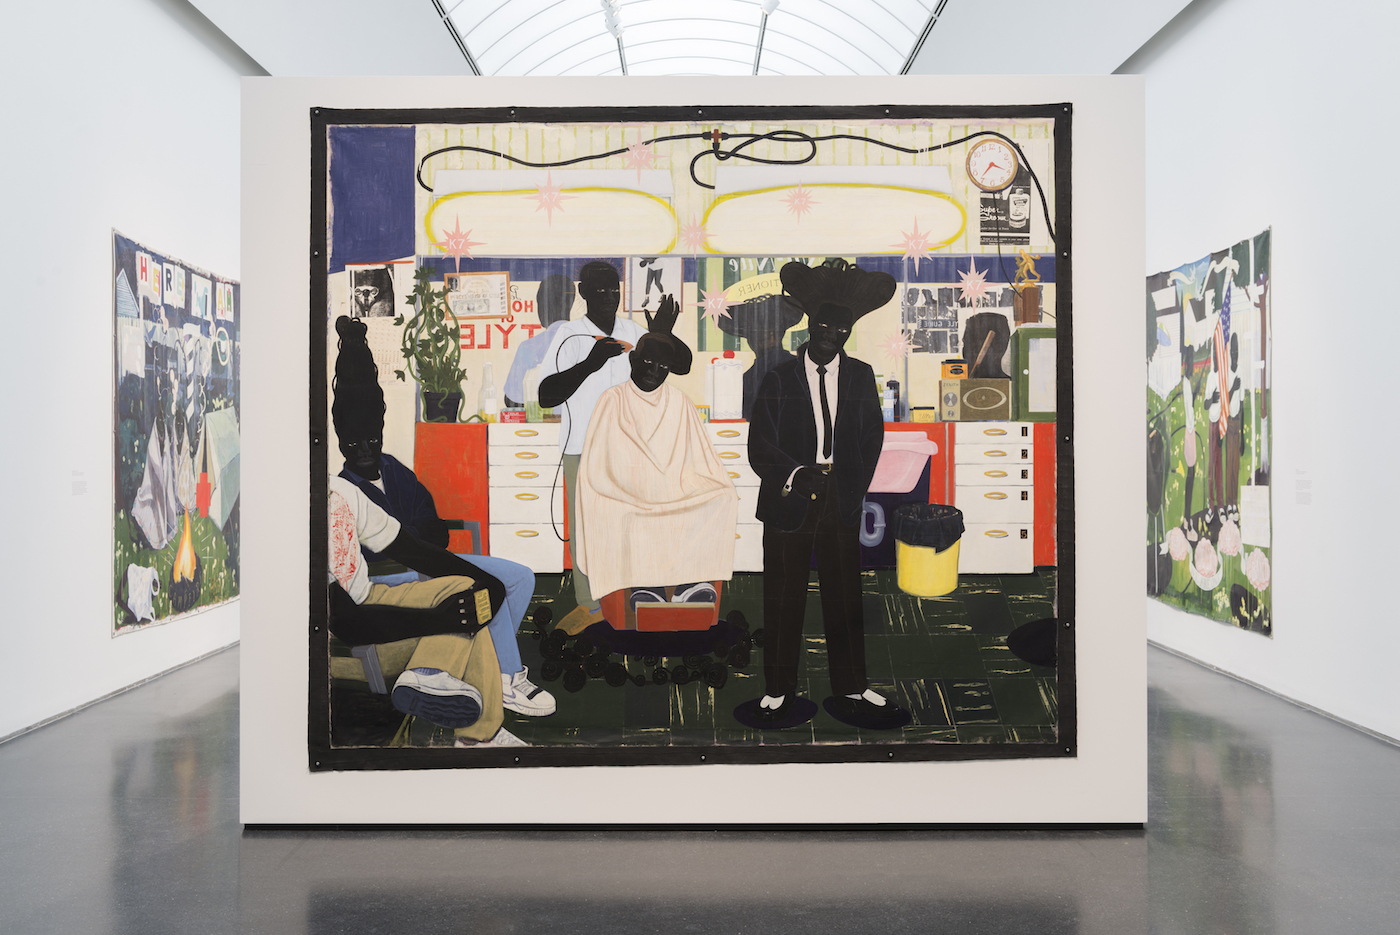 Installation view of 'Kerry James Marshall: Mastry' at the Museum of Contemporary Art Chicago (photo by Nathan Keay, © MCA Chicago)